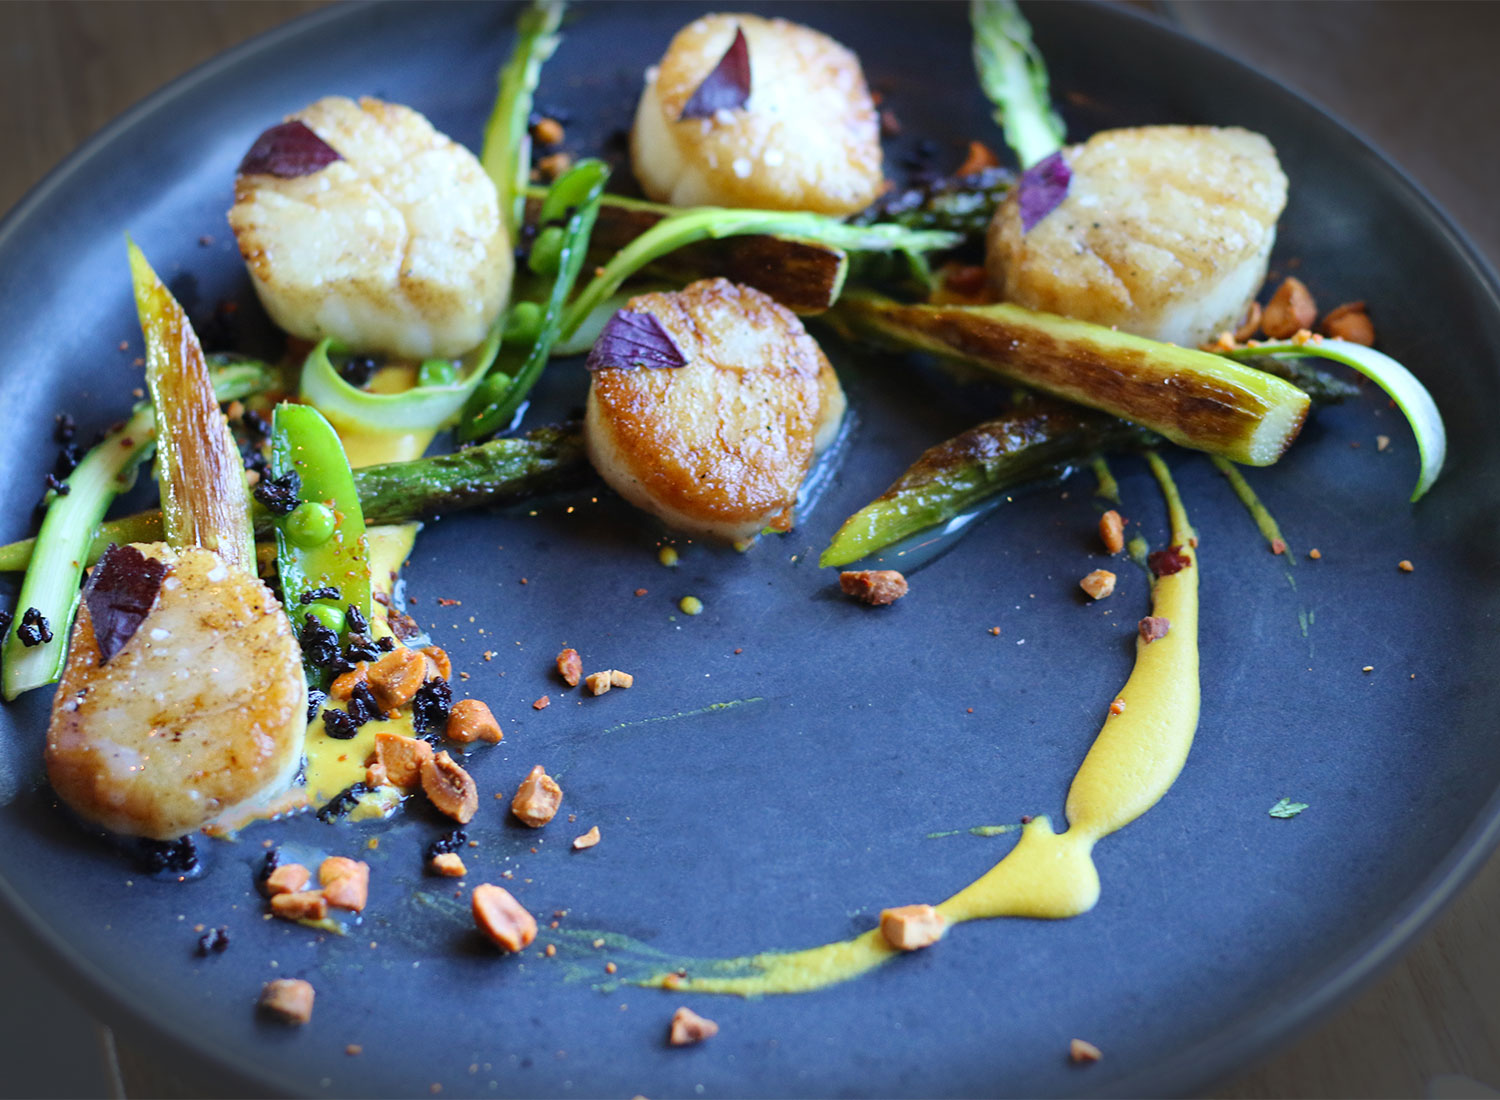 Scallops at Spoonbar restaurant in Healdsburg on 5/15/15 . Copyright Heather Irwin, Biteclubeats.com.